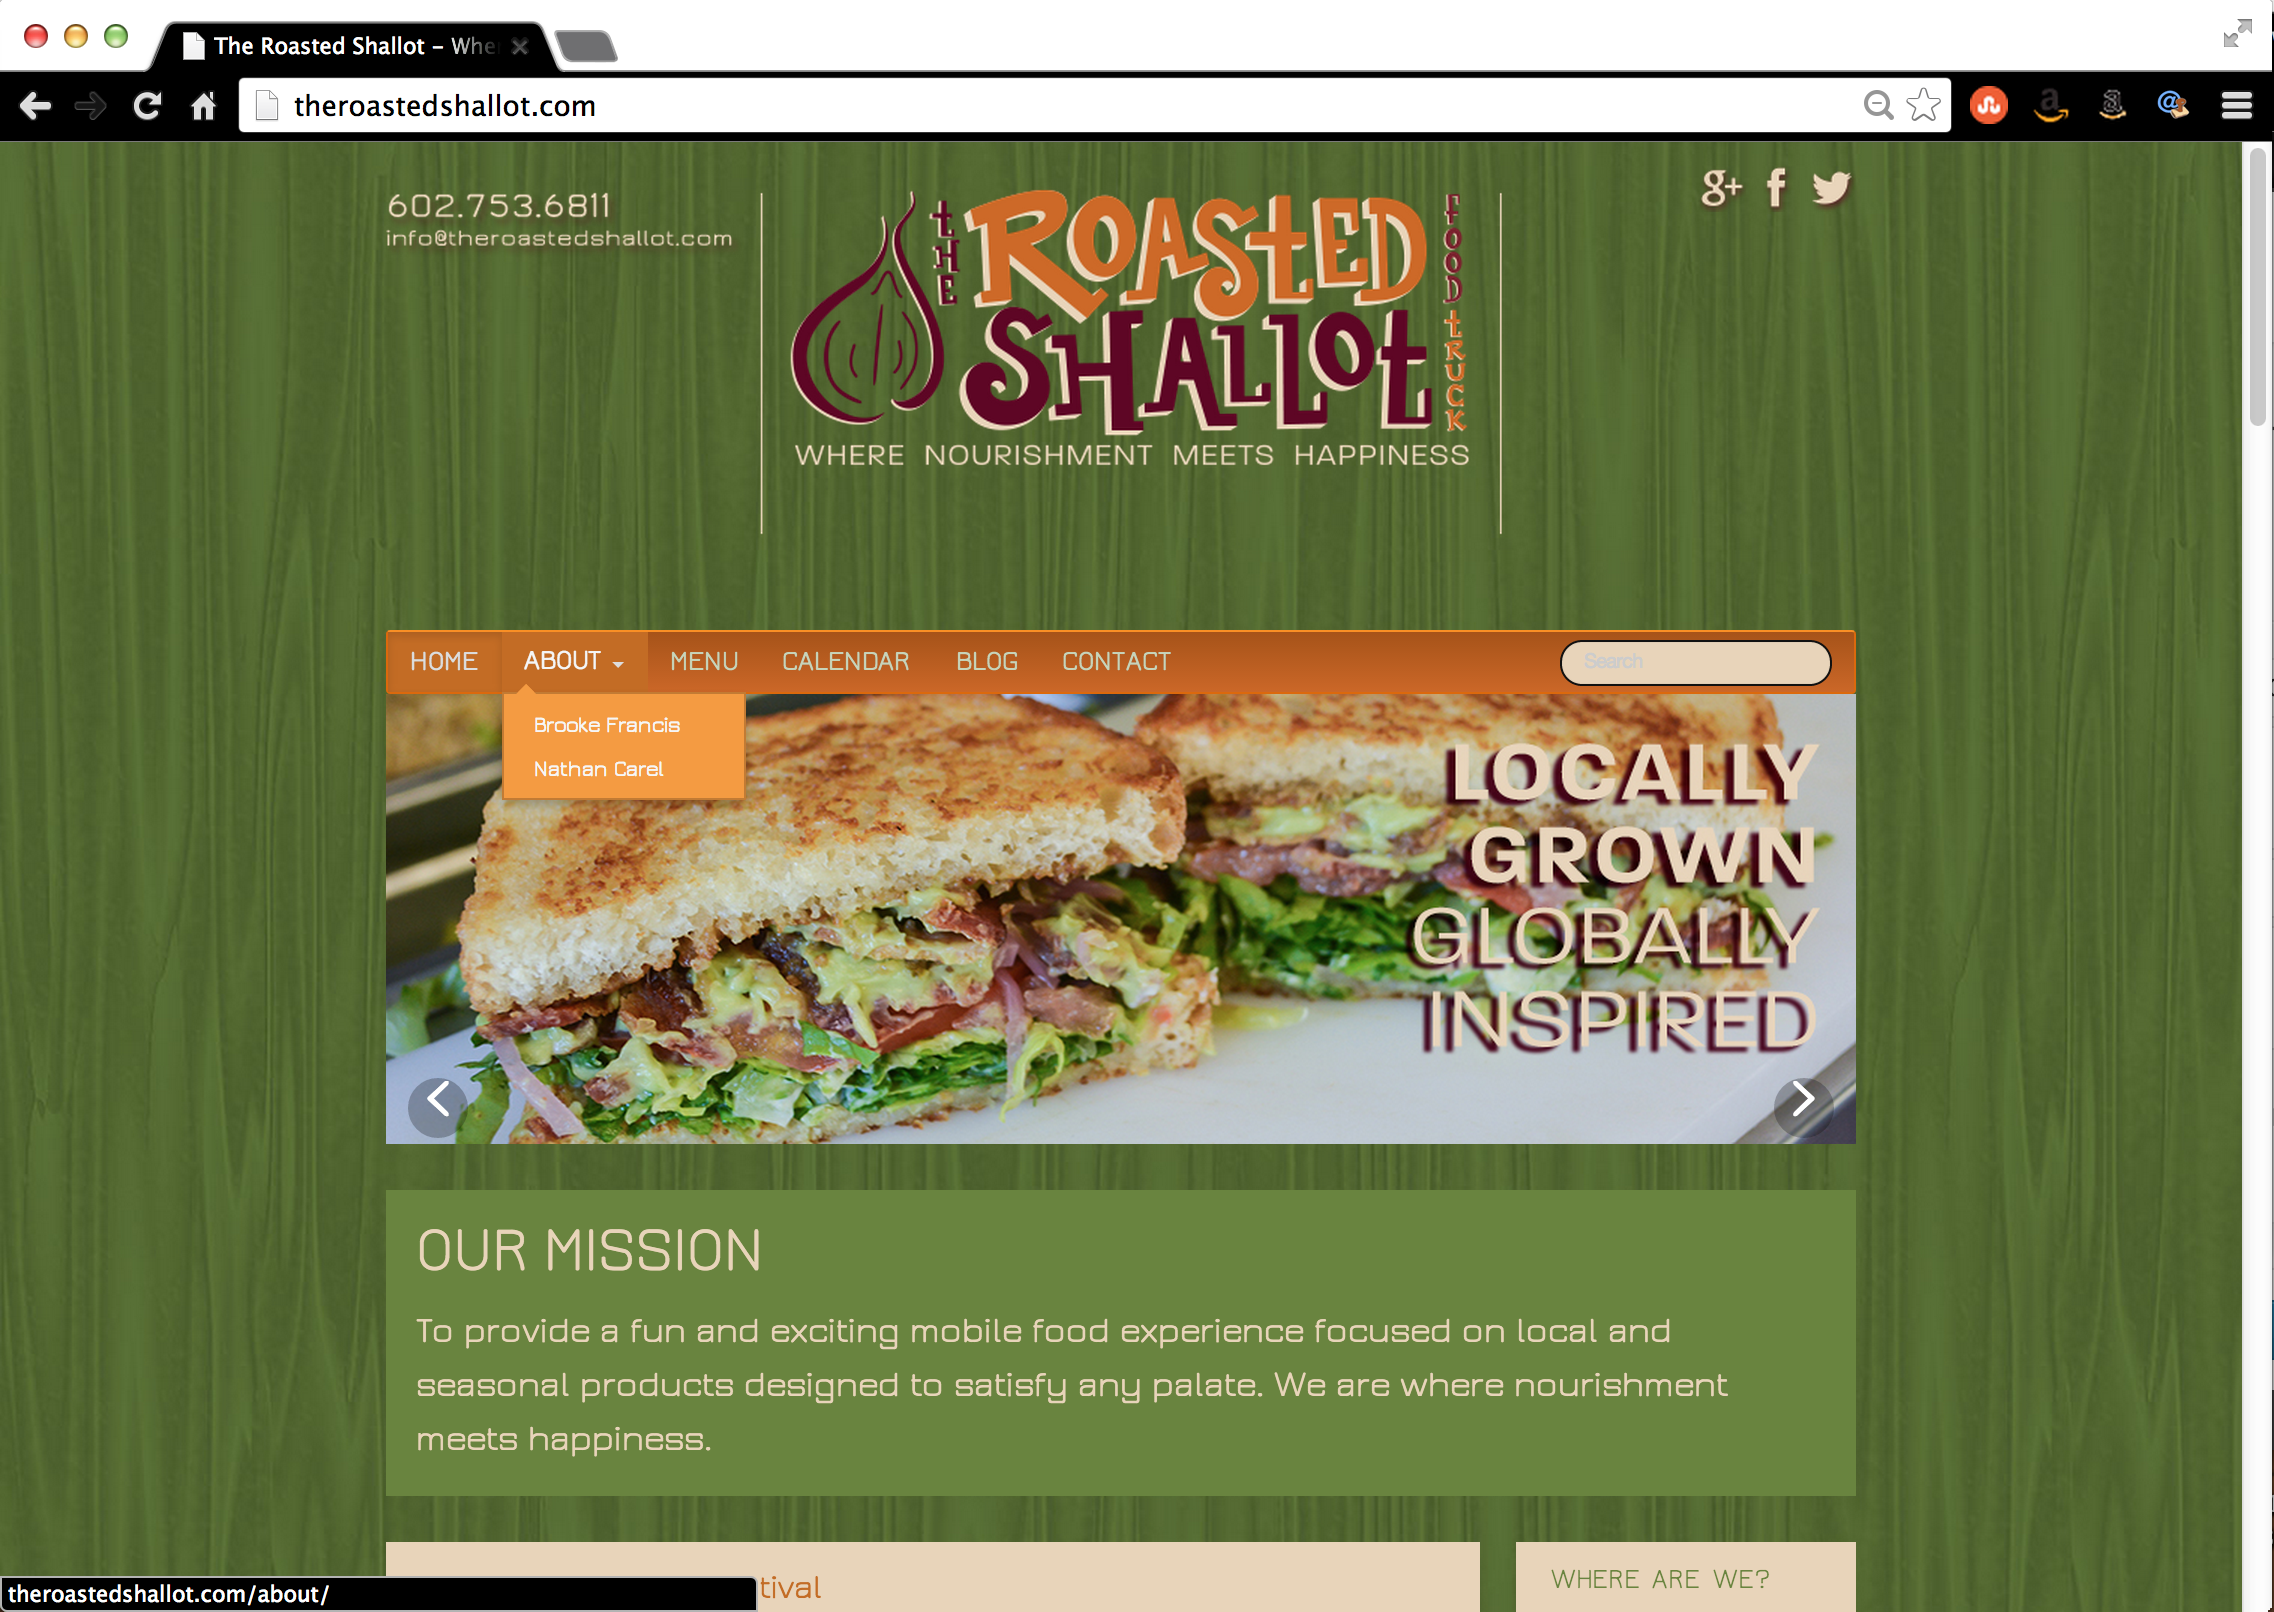 PROJECT UPDATE: The Roasted Shallot Food Truck Website